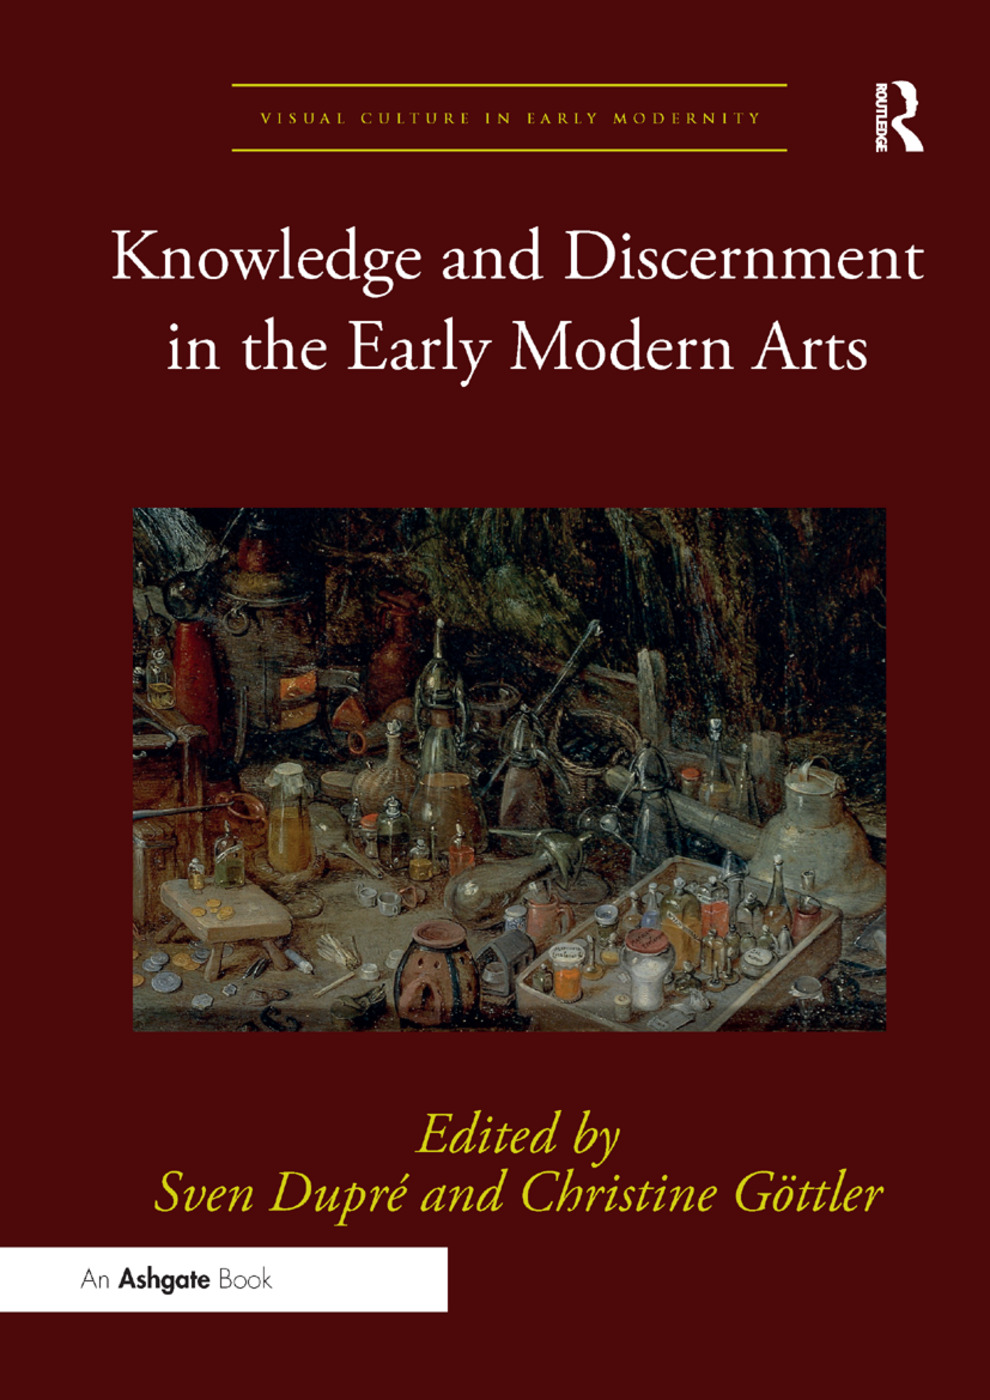 Knowledge and Discernment in the Early Modern Arts book cover